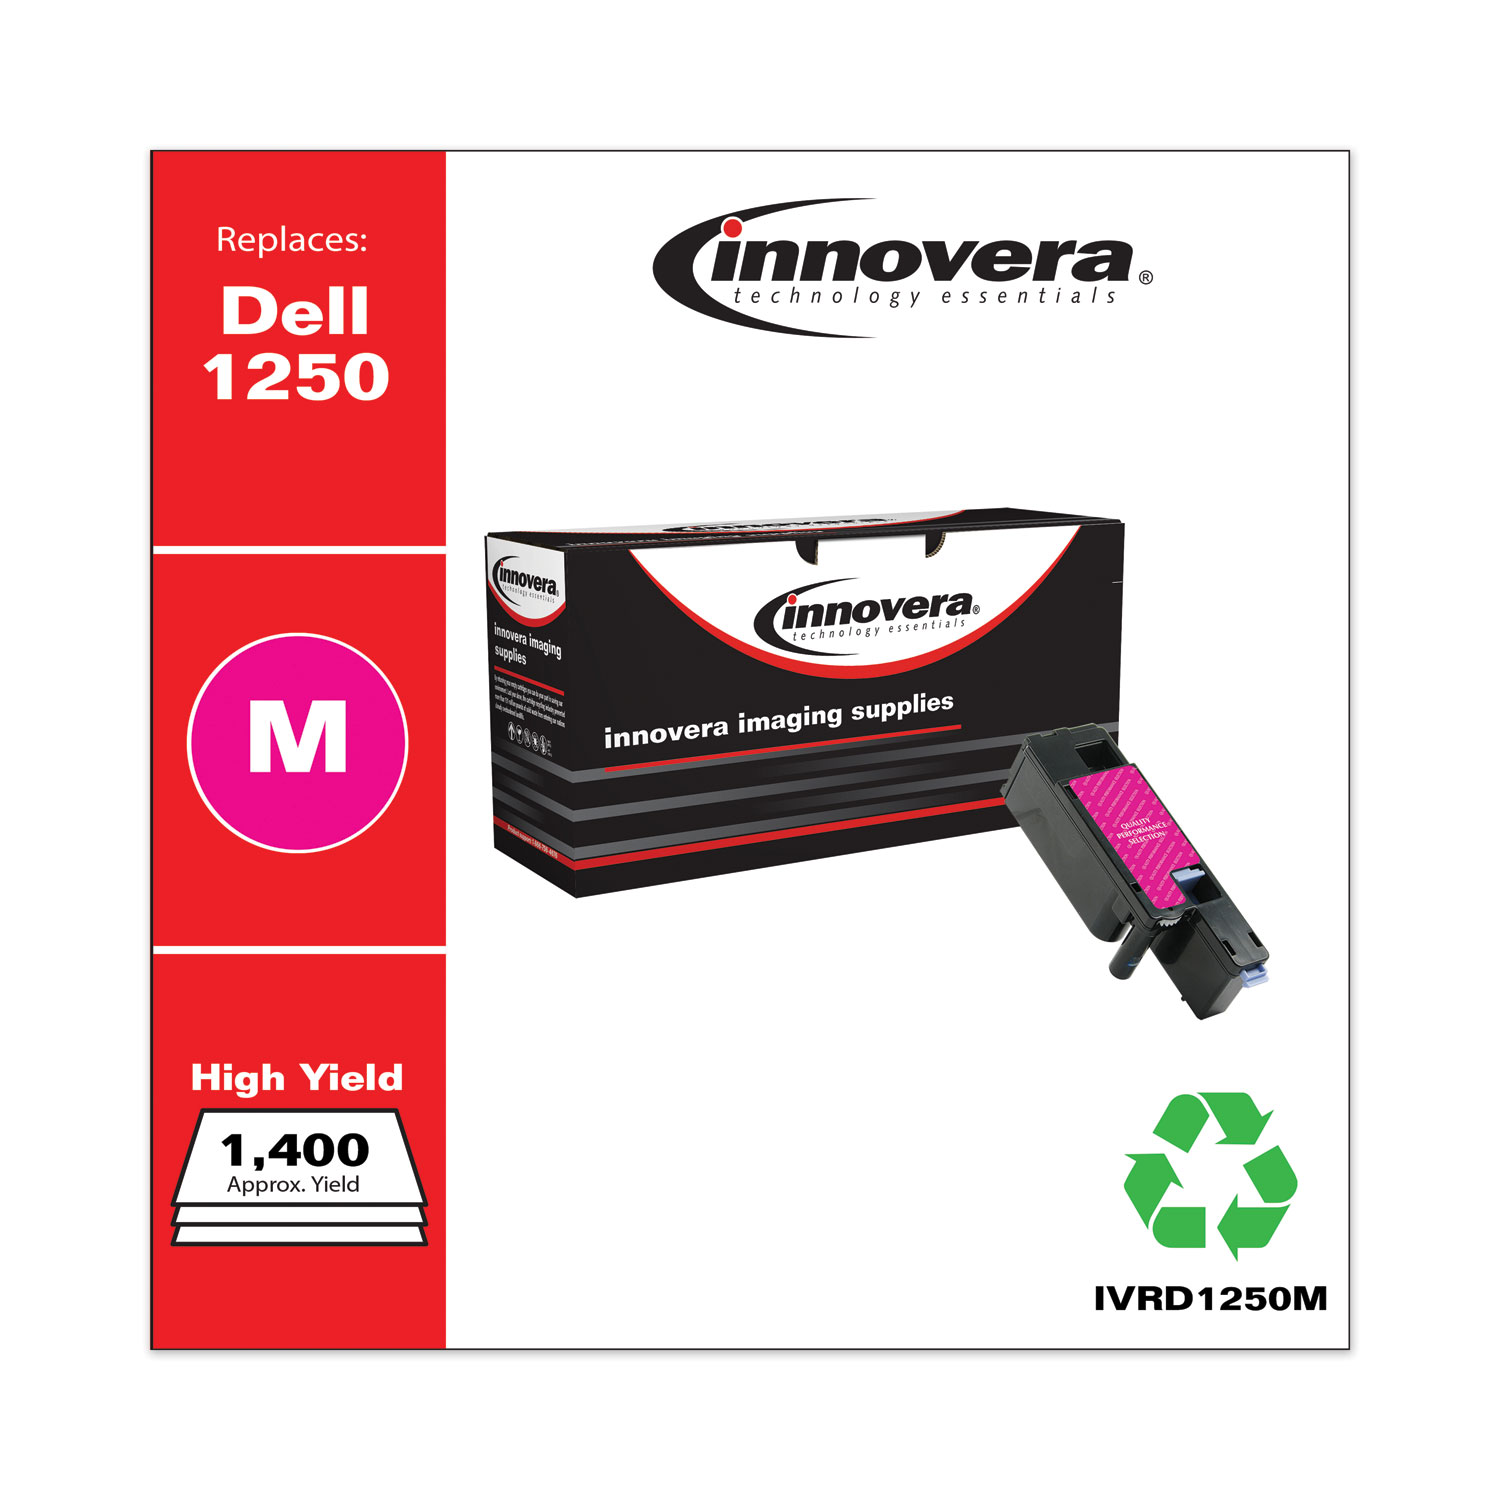 Remanufactured Magenta High-Yield Toner, Replacement for Dell 1250 (331-0780), 1,400 Page-Yield IVRD1250M